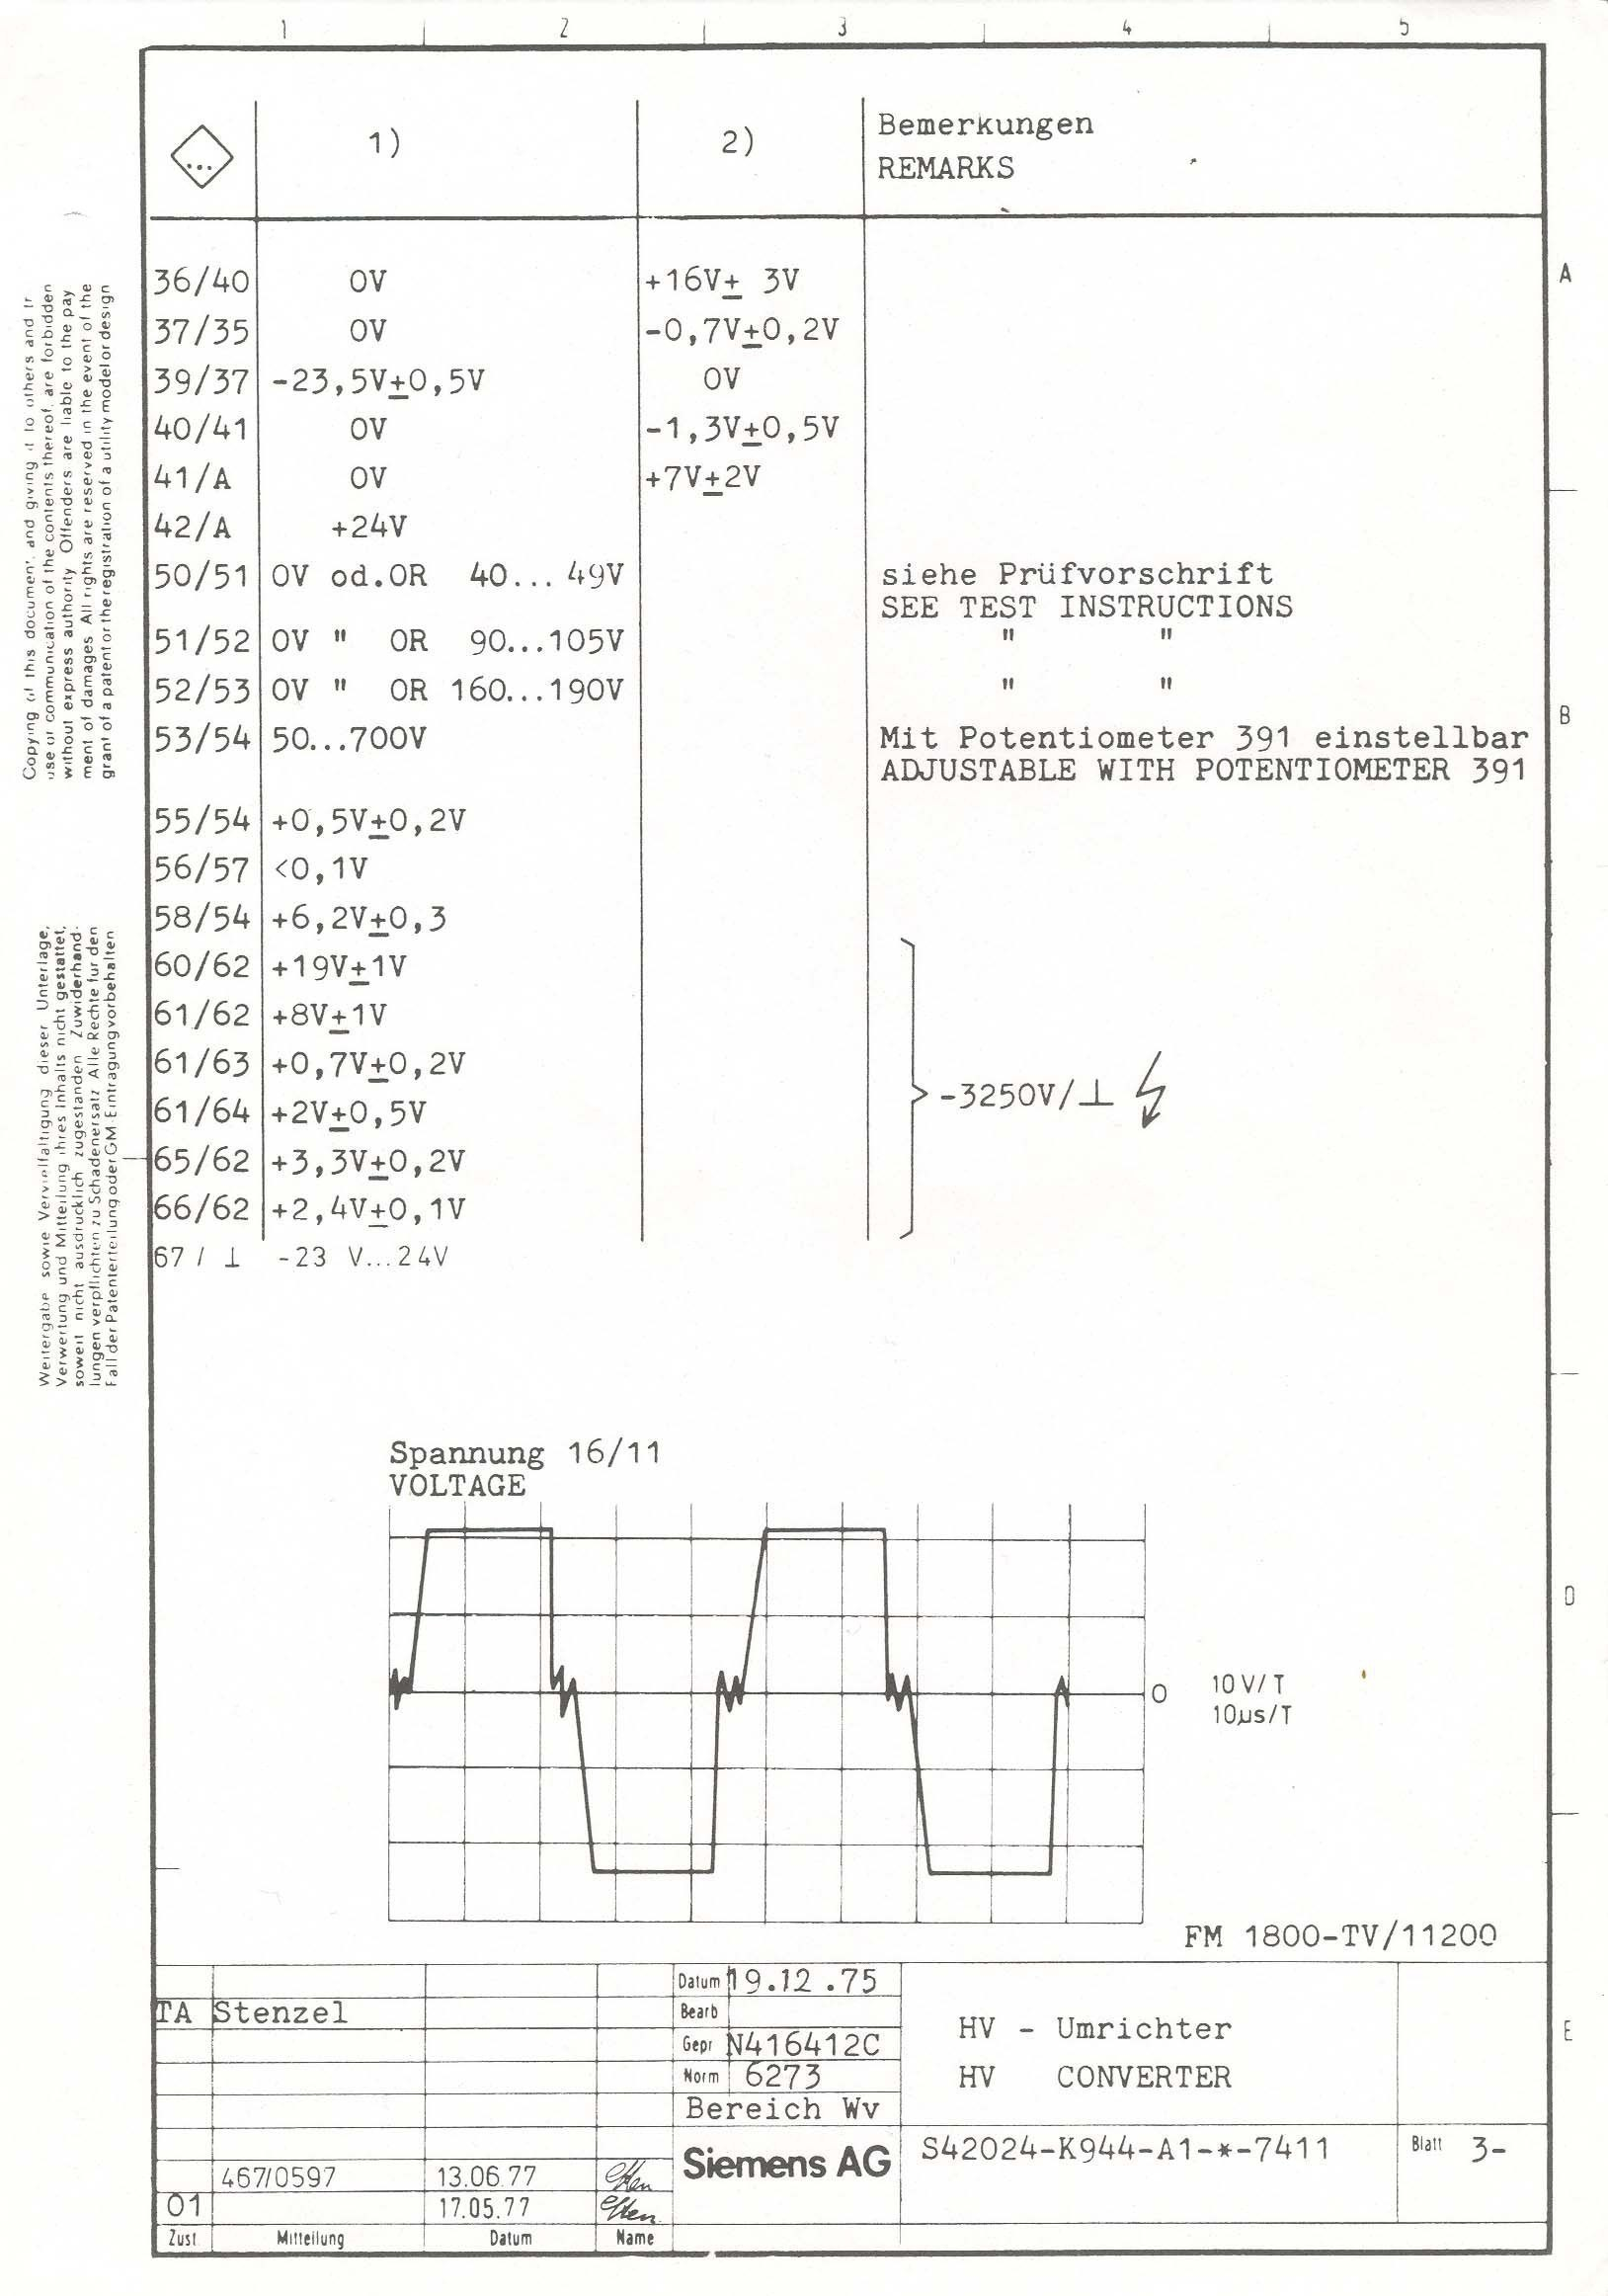 Ford Tractor Parts Diagram ford 1900 Wiring Diagram Another Blog About Wiring Diagram • Of Ford Tractor Parts Diagram